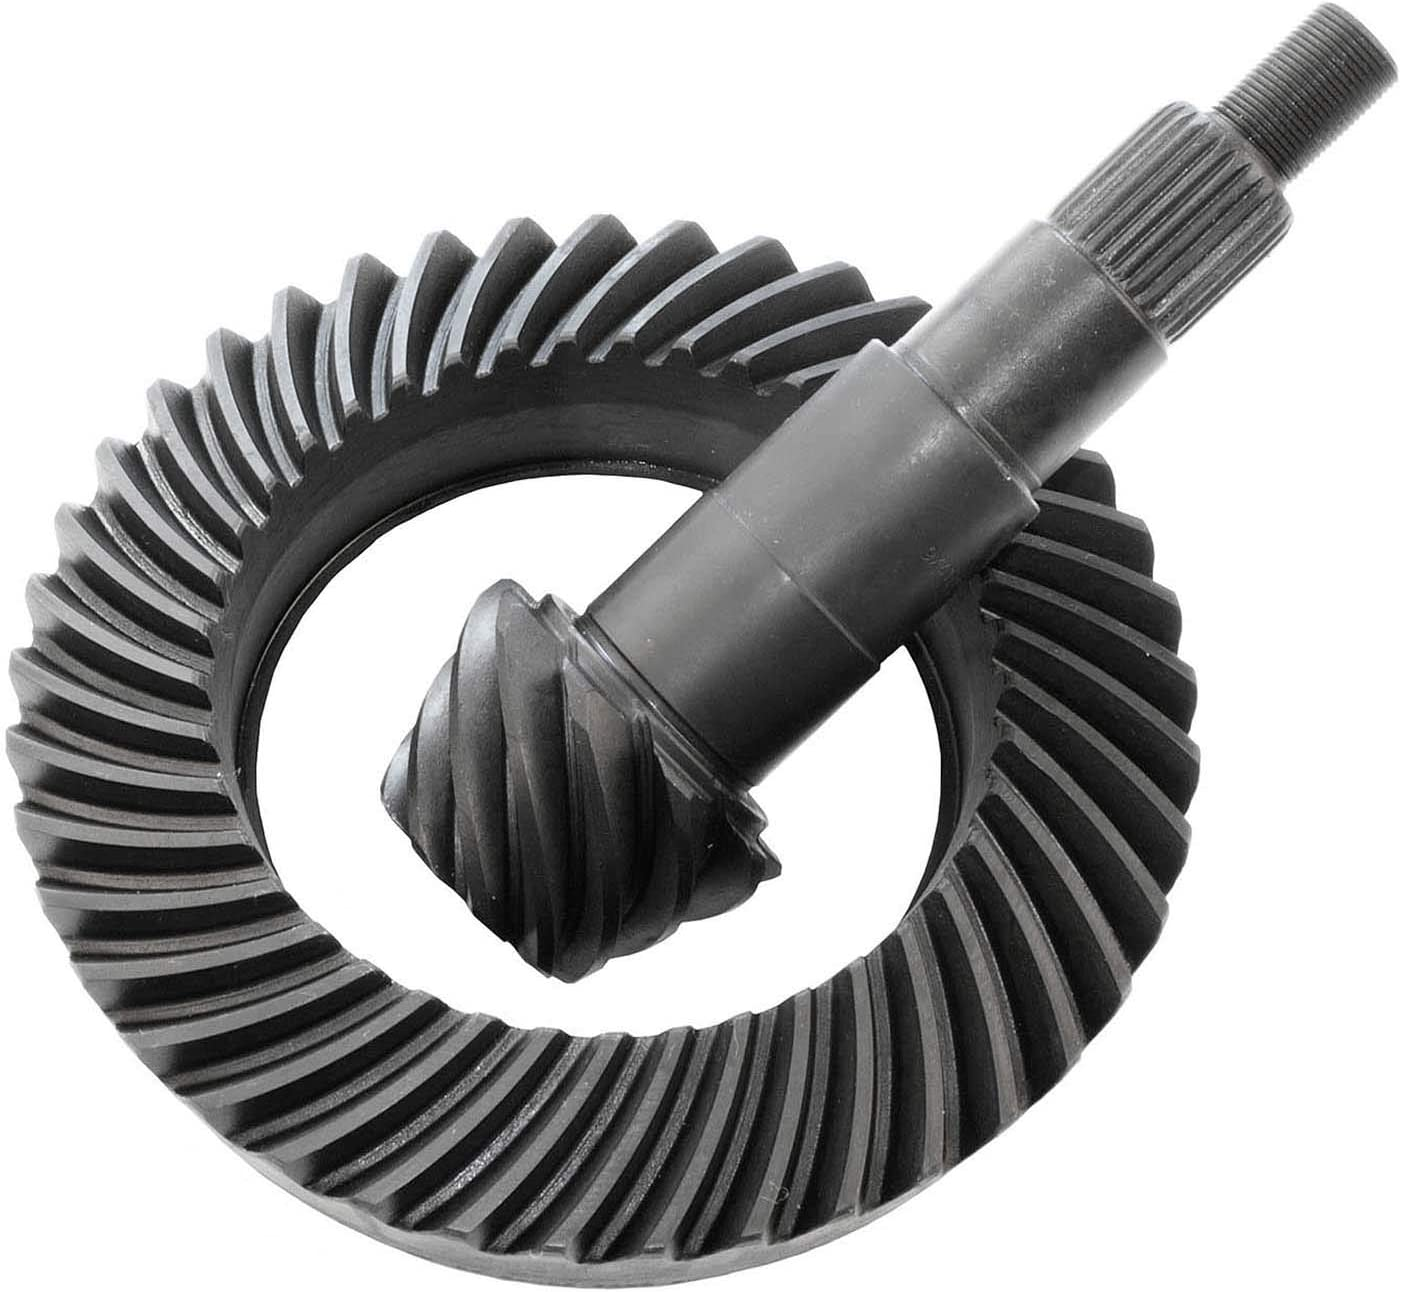 Motive Gear F7.5-308 Ring and Pinion Ford 7.5 Style, 3.08 Ratio